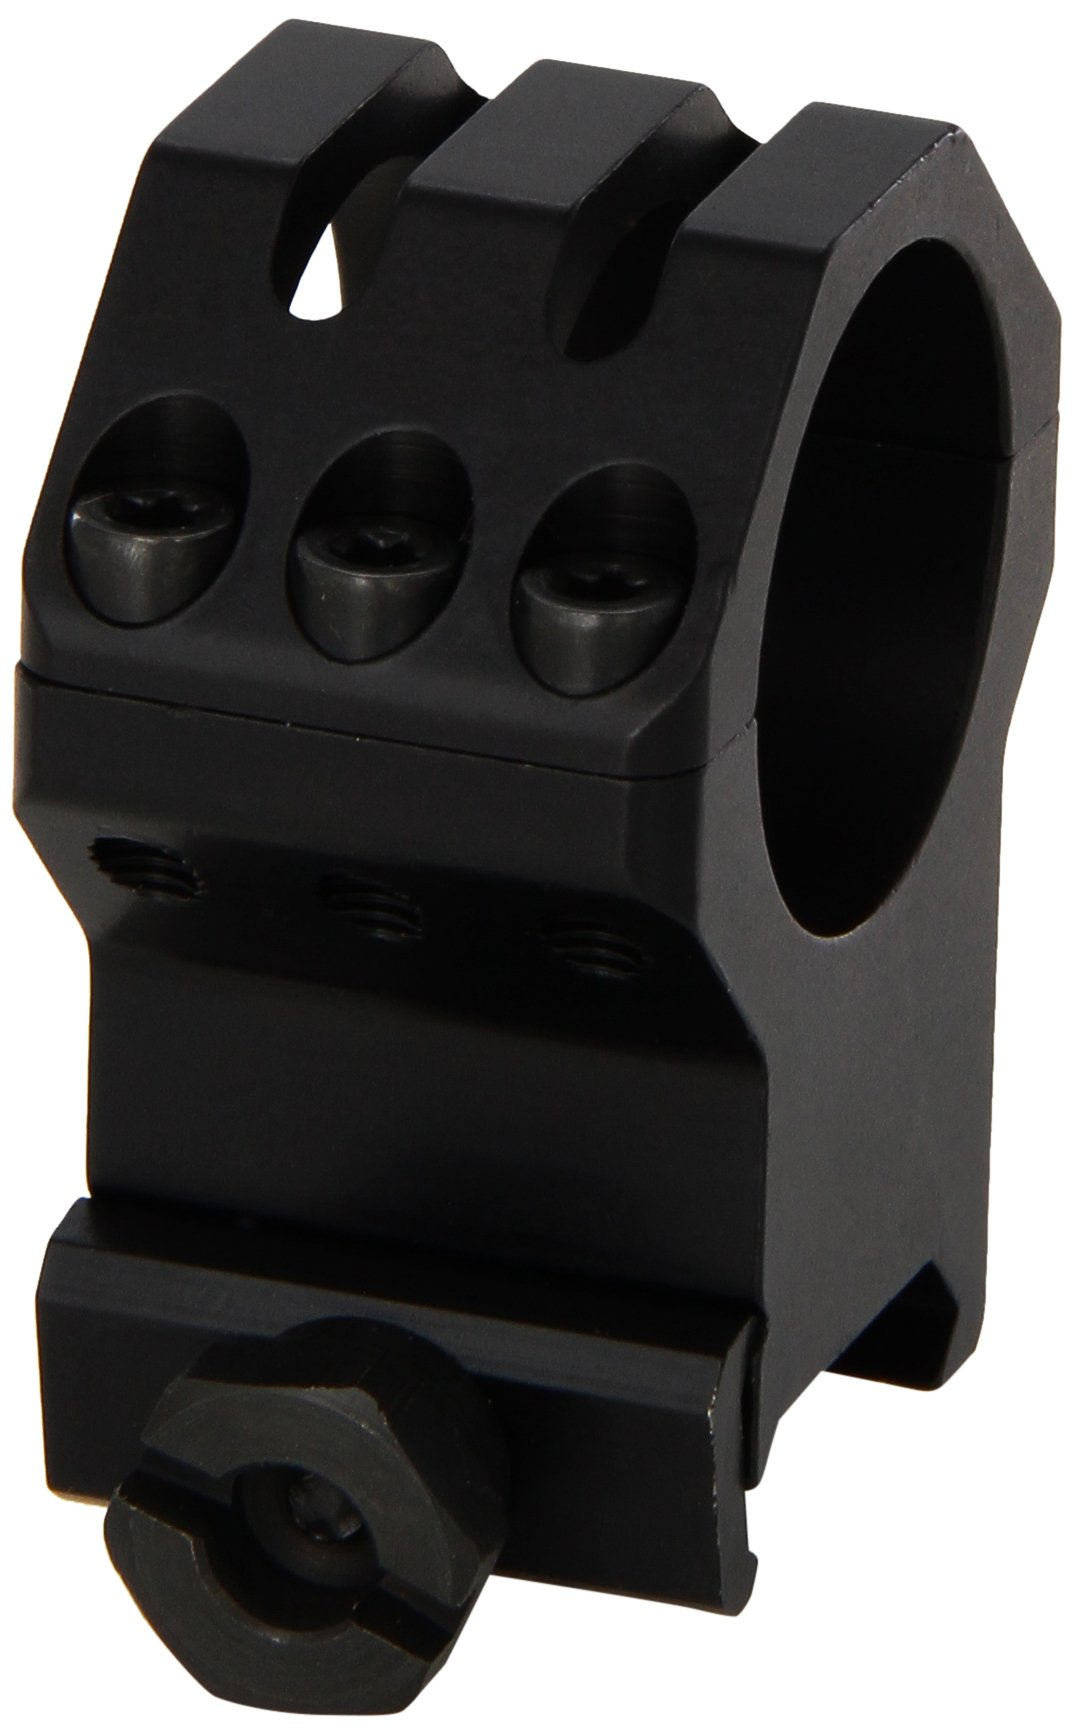 WEAVER 1-Inch Six Hole Tactical XX-High Rings (Matte Black) by WEAVER